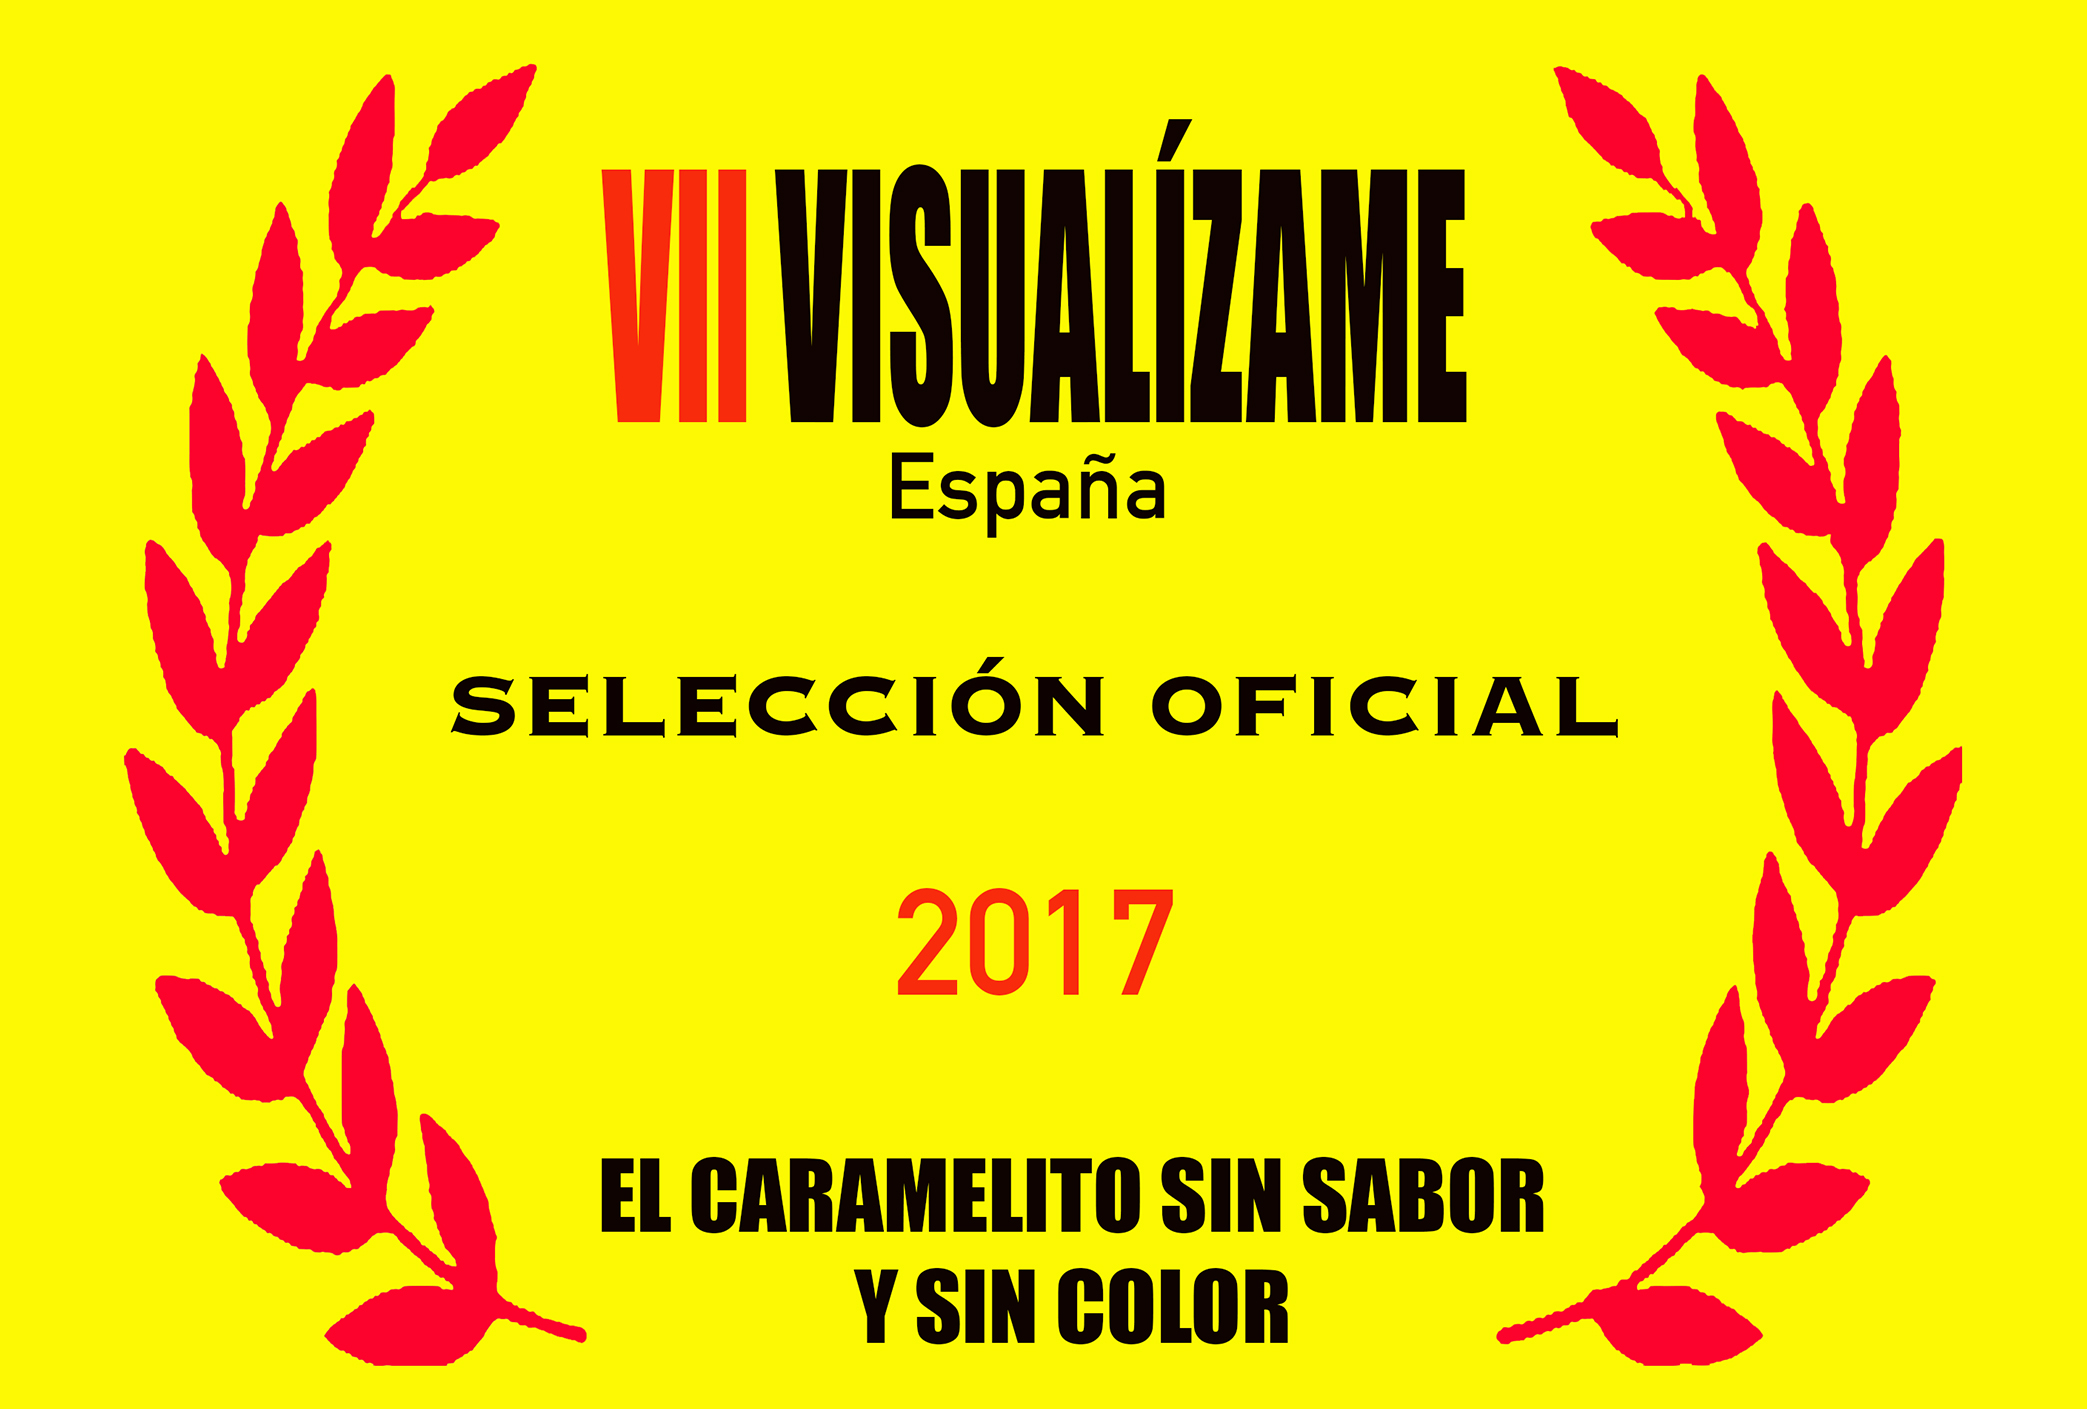 LAURELES-VISUALIZAME-ELCARAMELITO